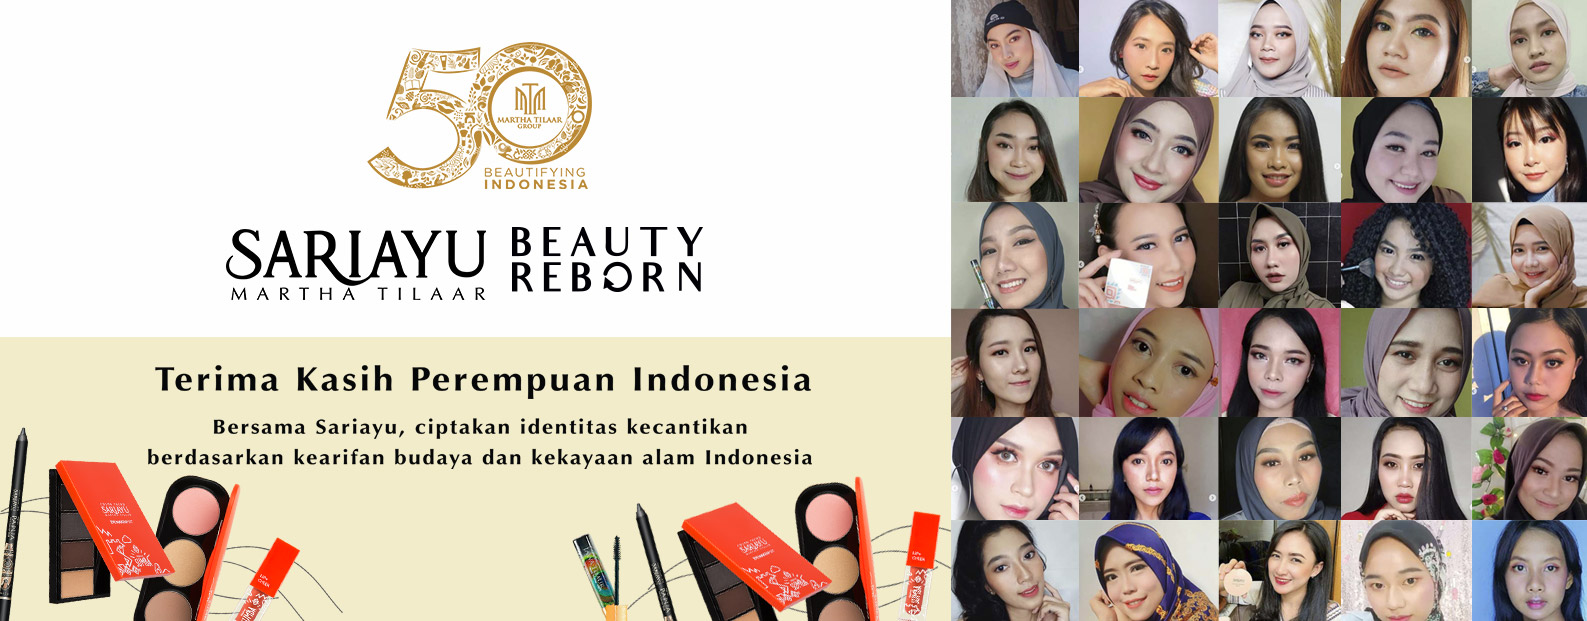 Sariayu Beauty Reborn